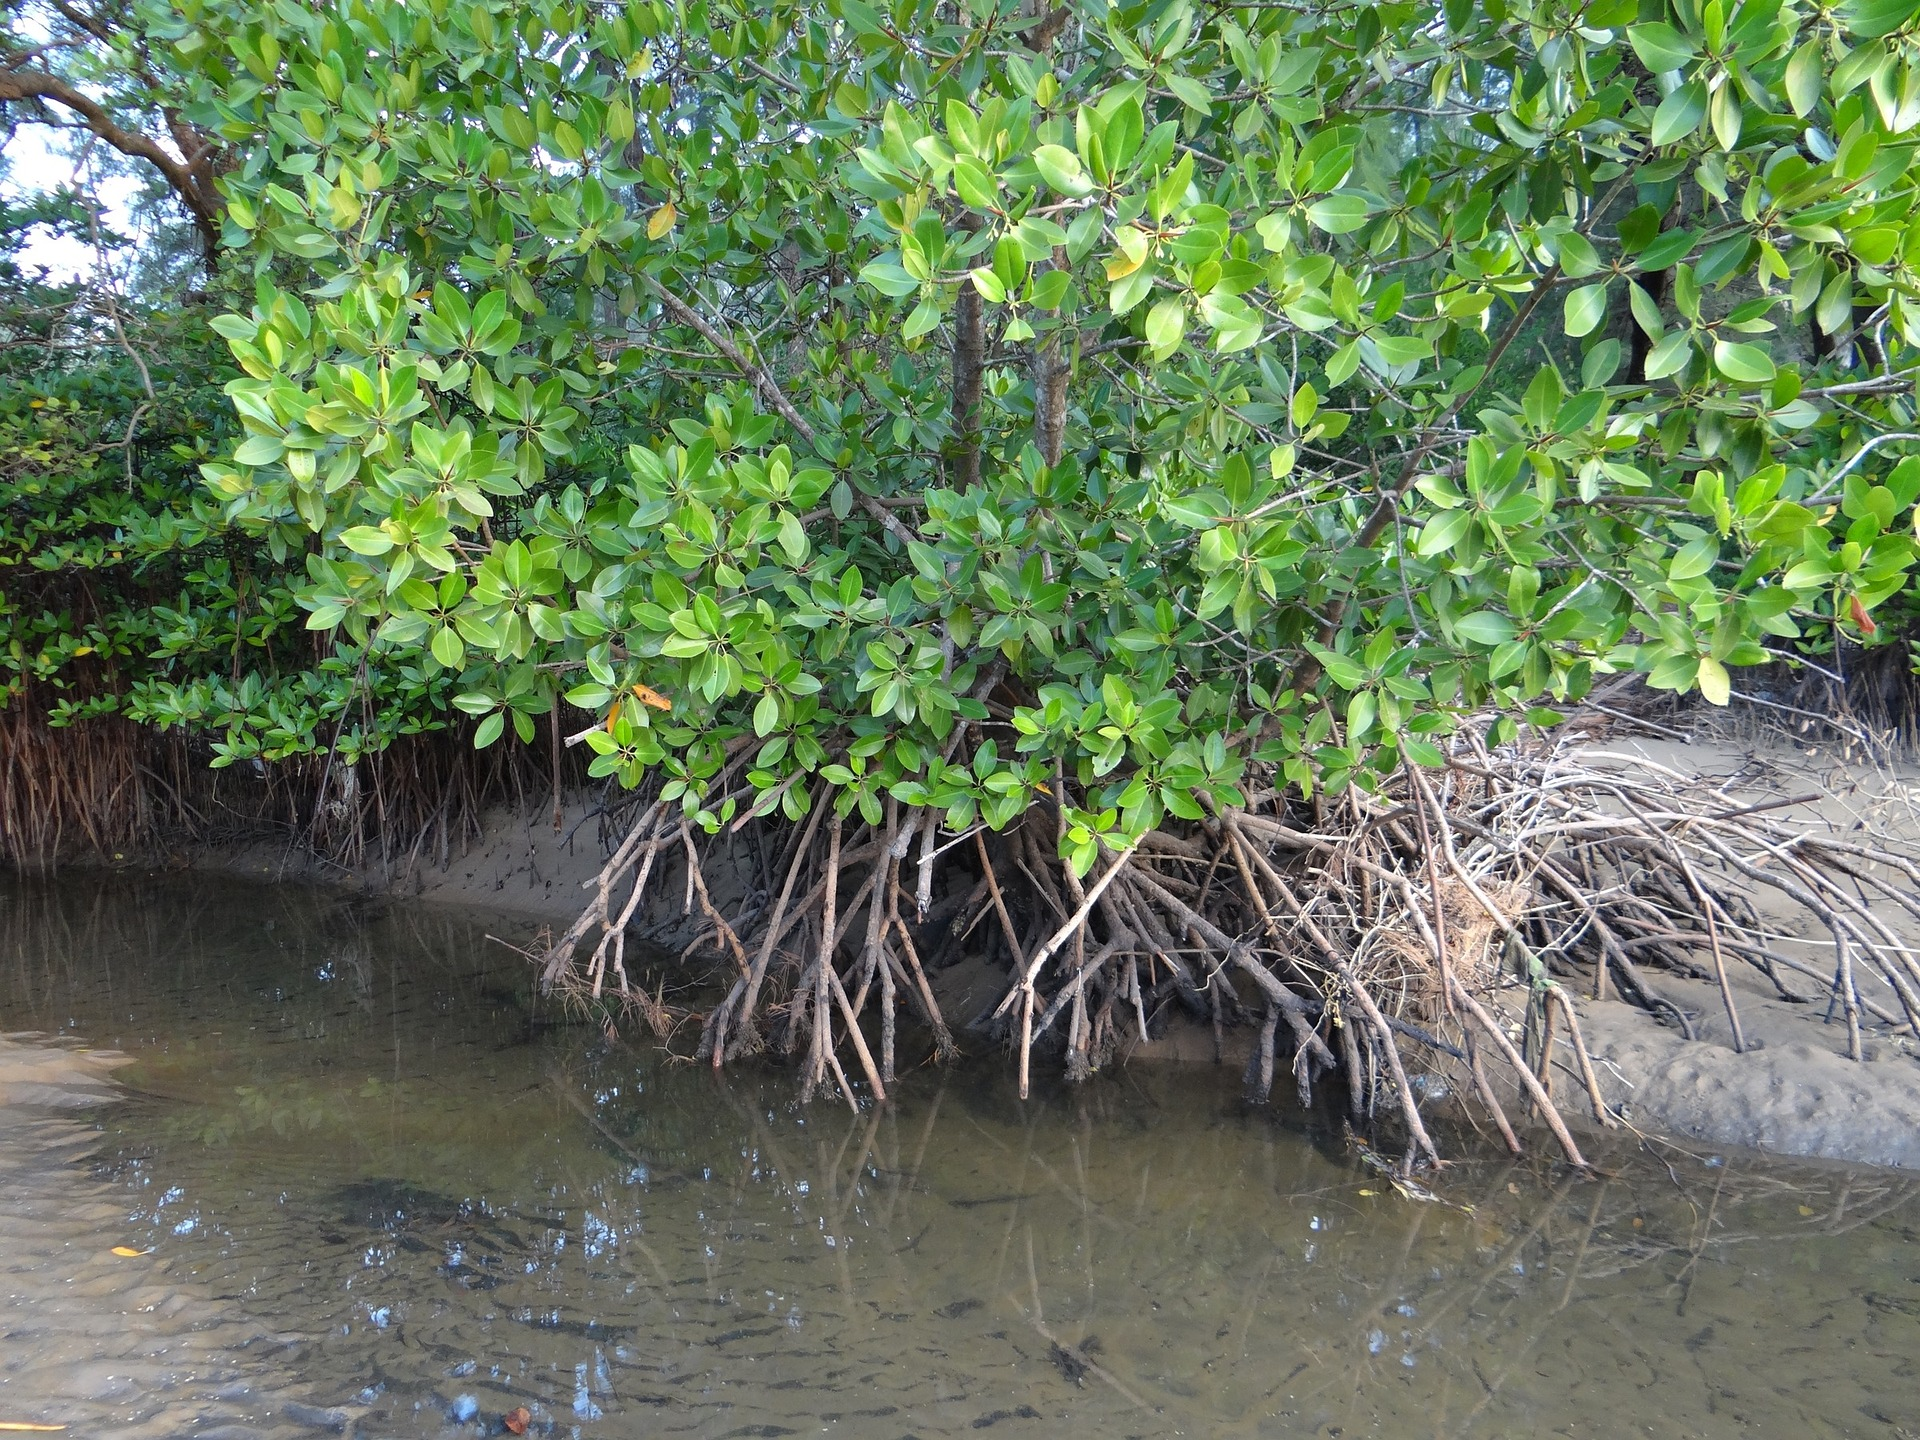 Situation Analysis for Mangroves for the Future: Understanding the Resilience of Coastal Systems